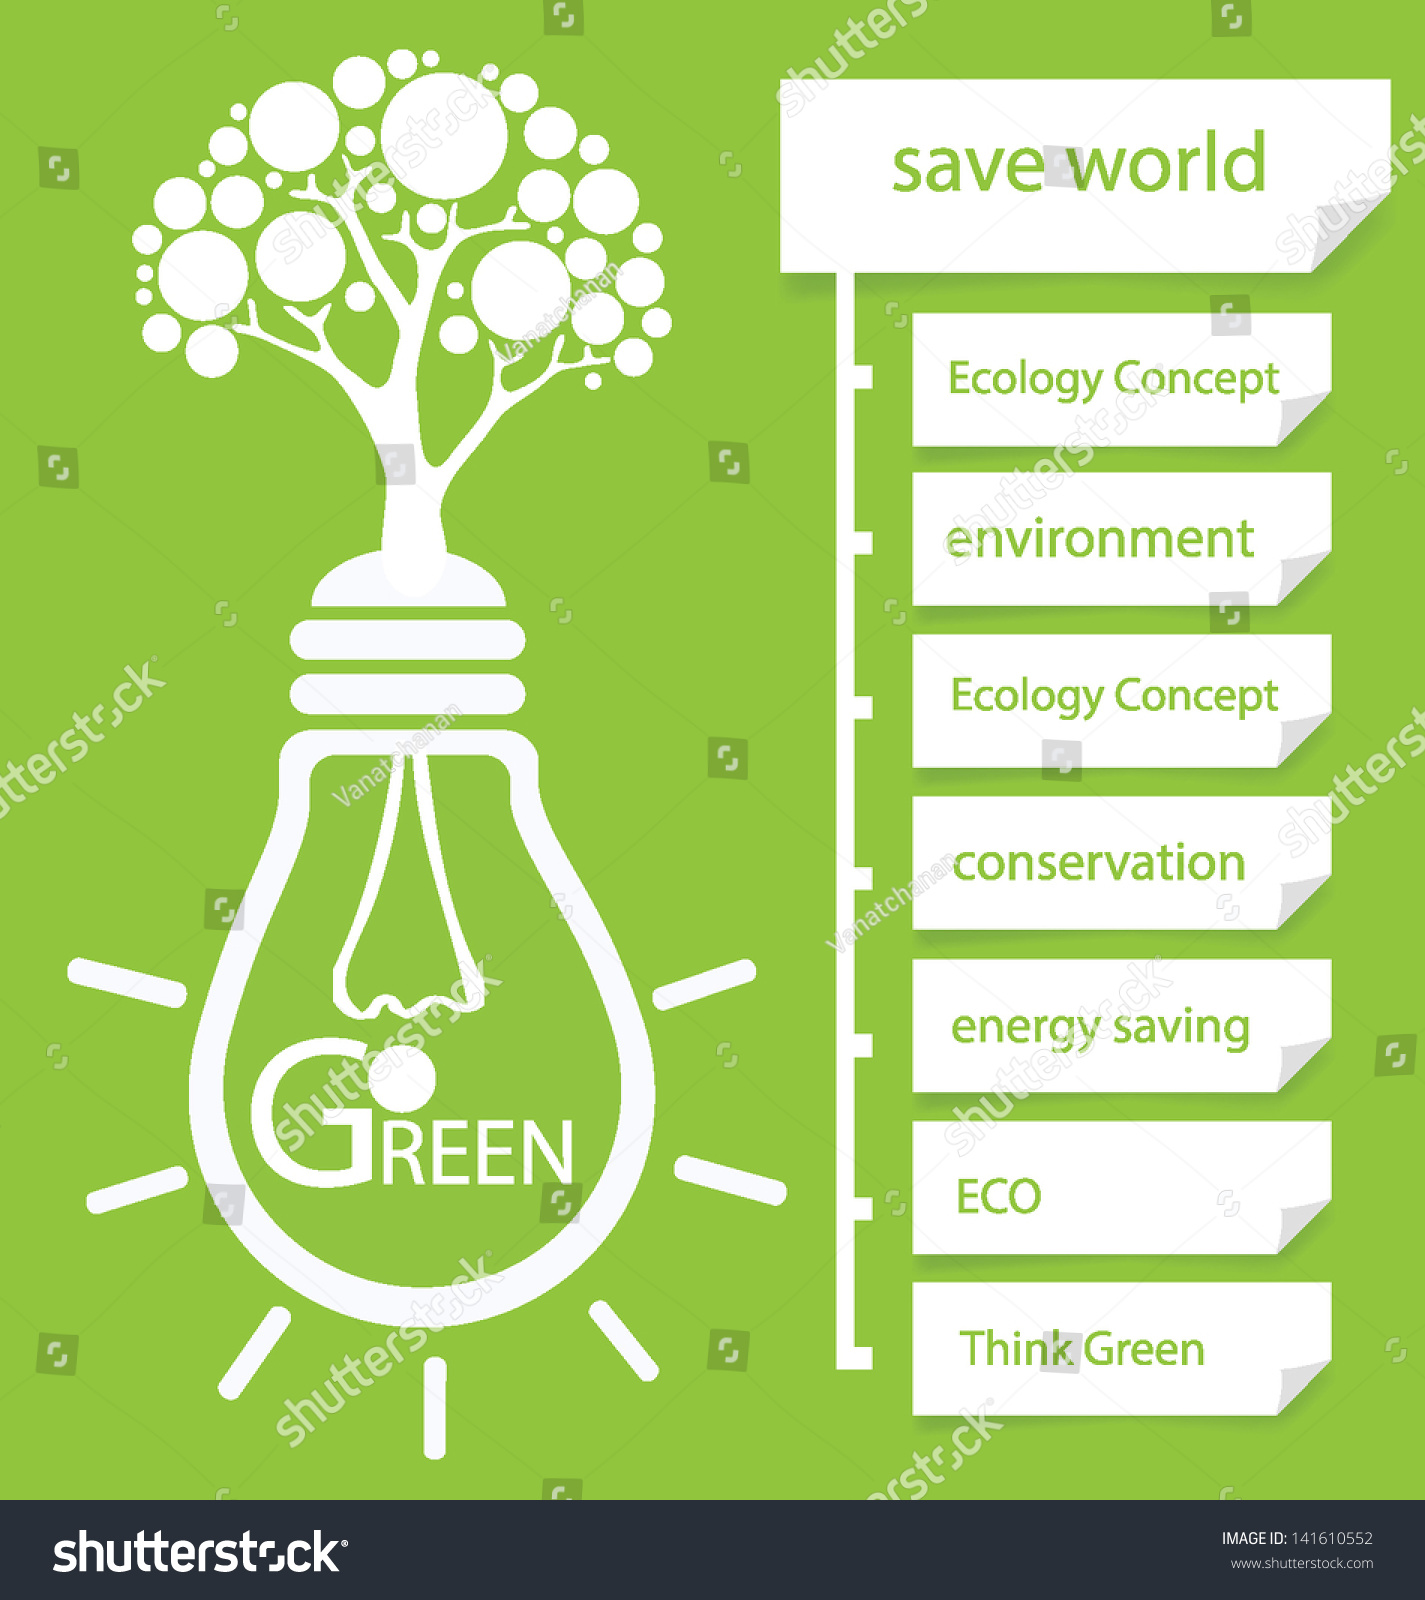 go green design template diagram vector illustration 141610552